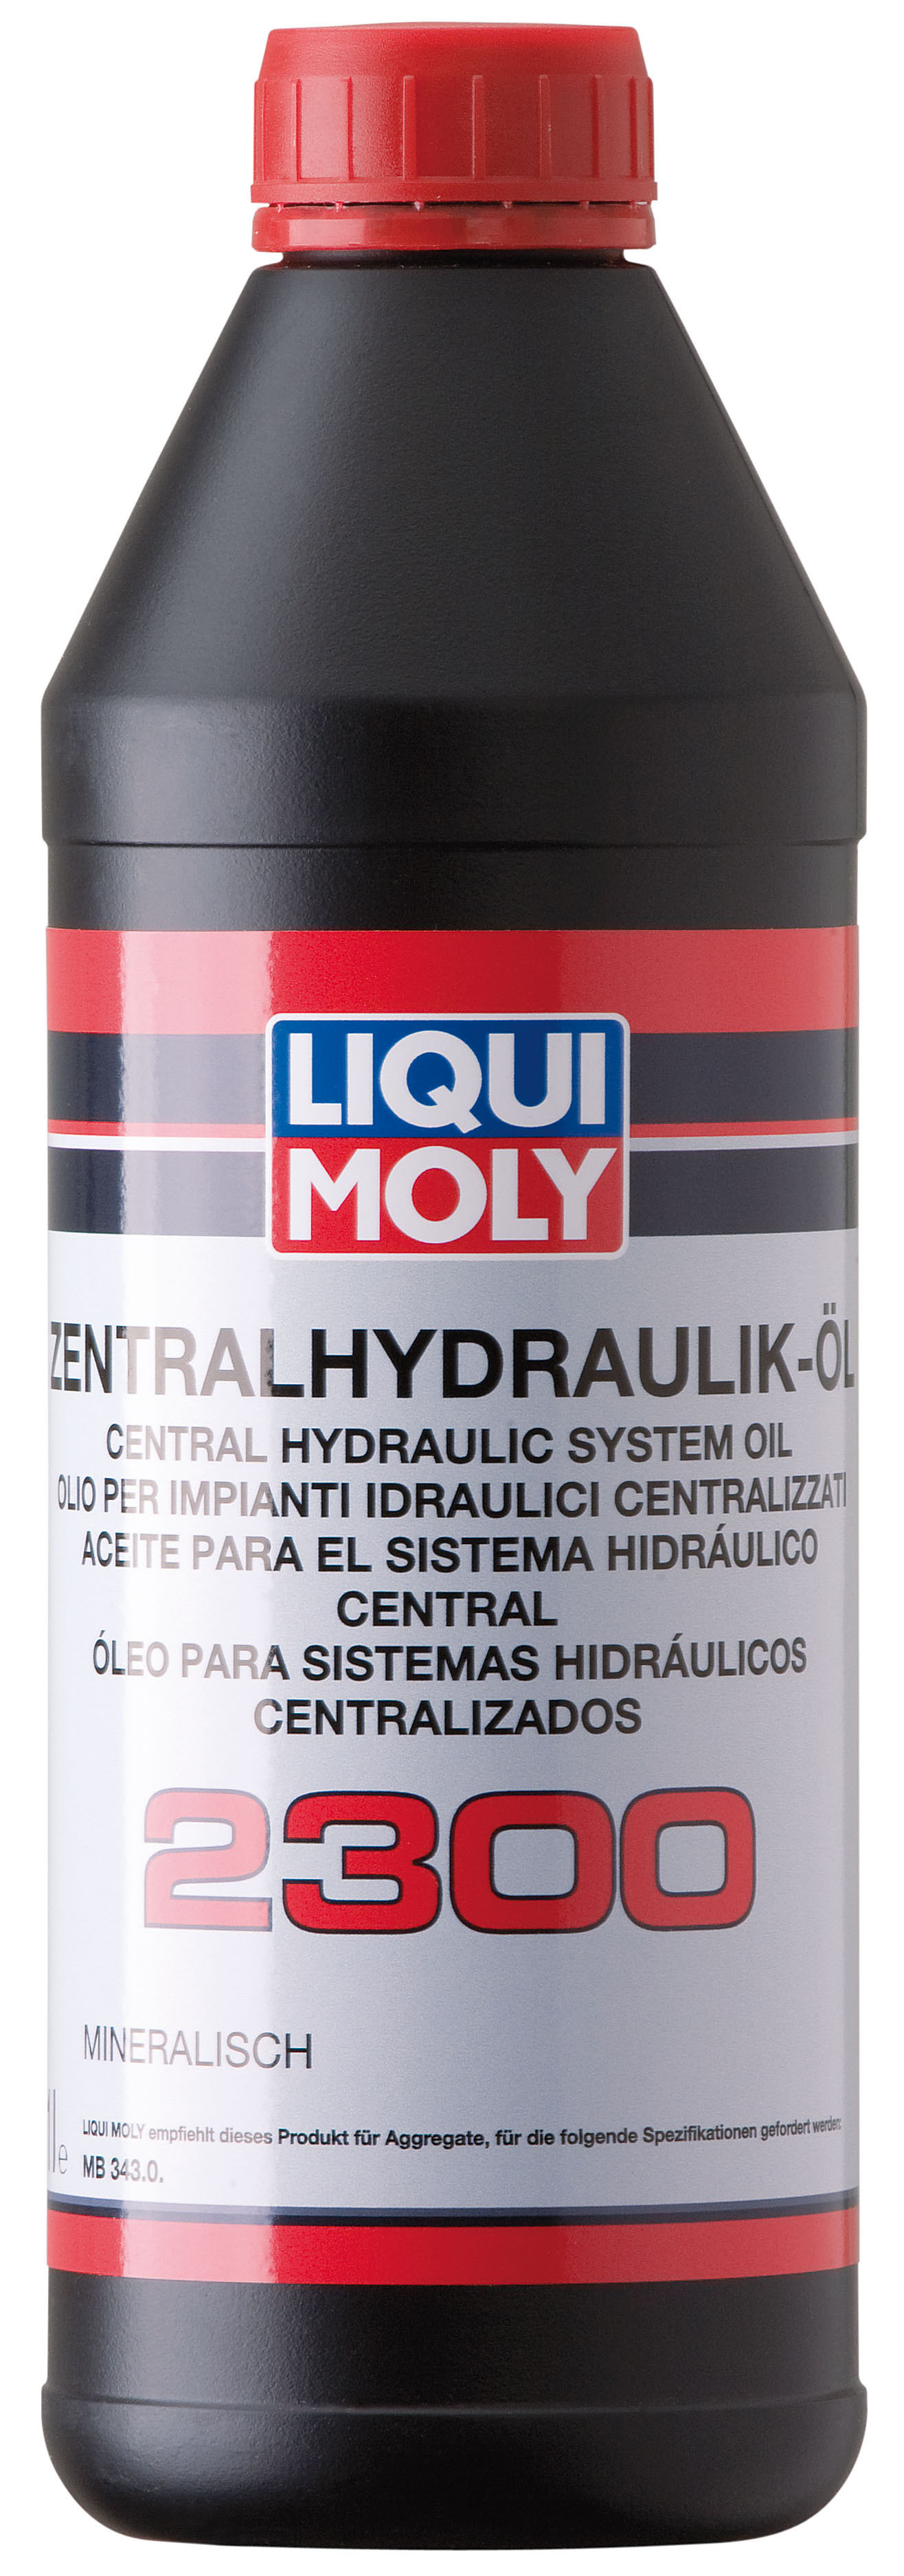 liqui moly 3665 zentralhydraulik l 2300 mineralisch mb. Black Bedroom Furniture Sets. Home Design Ideas